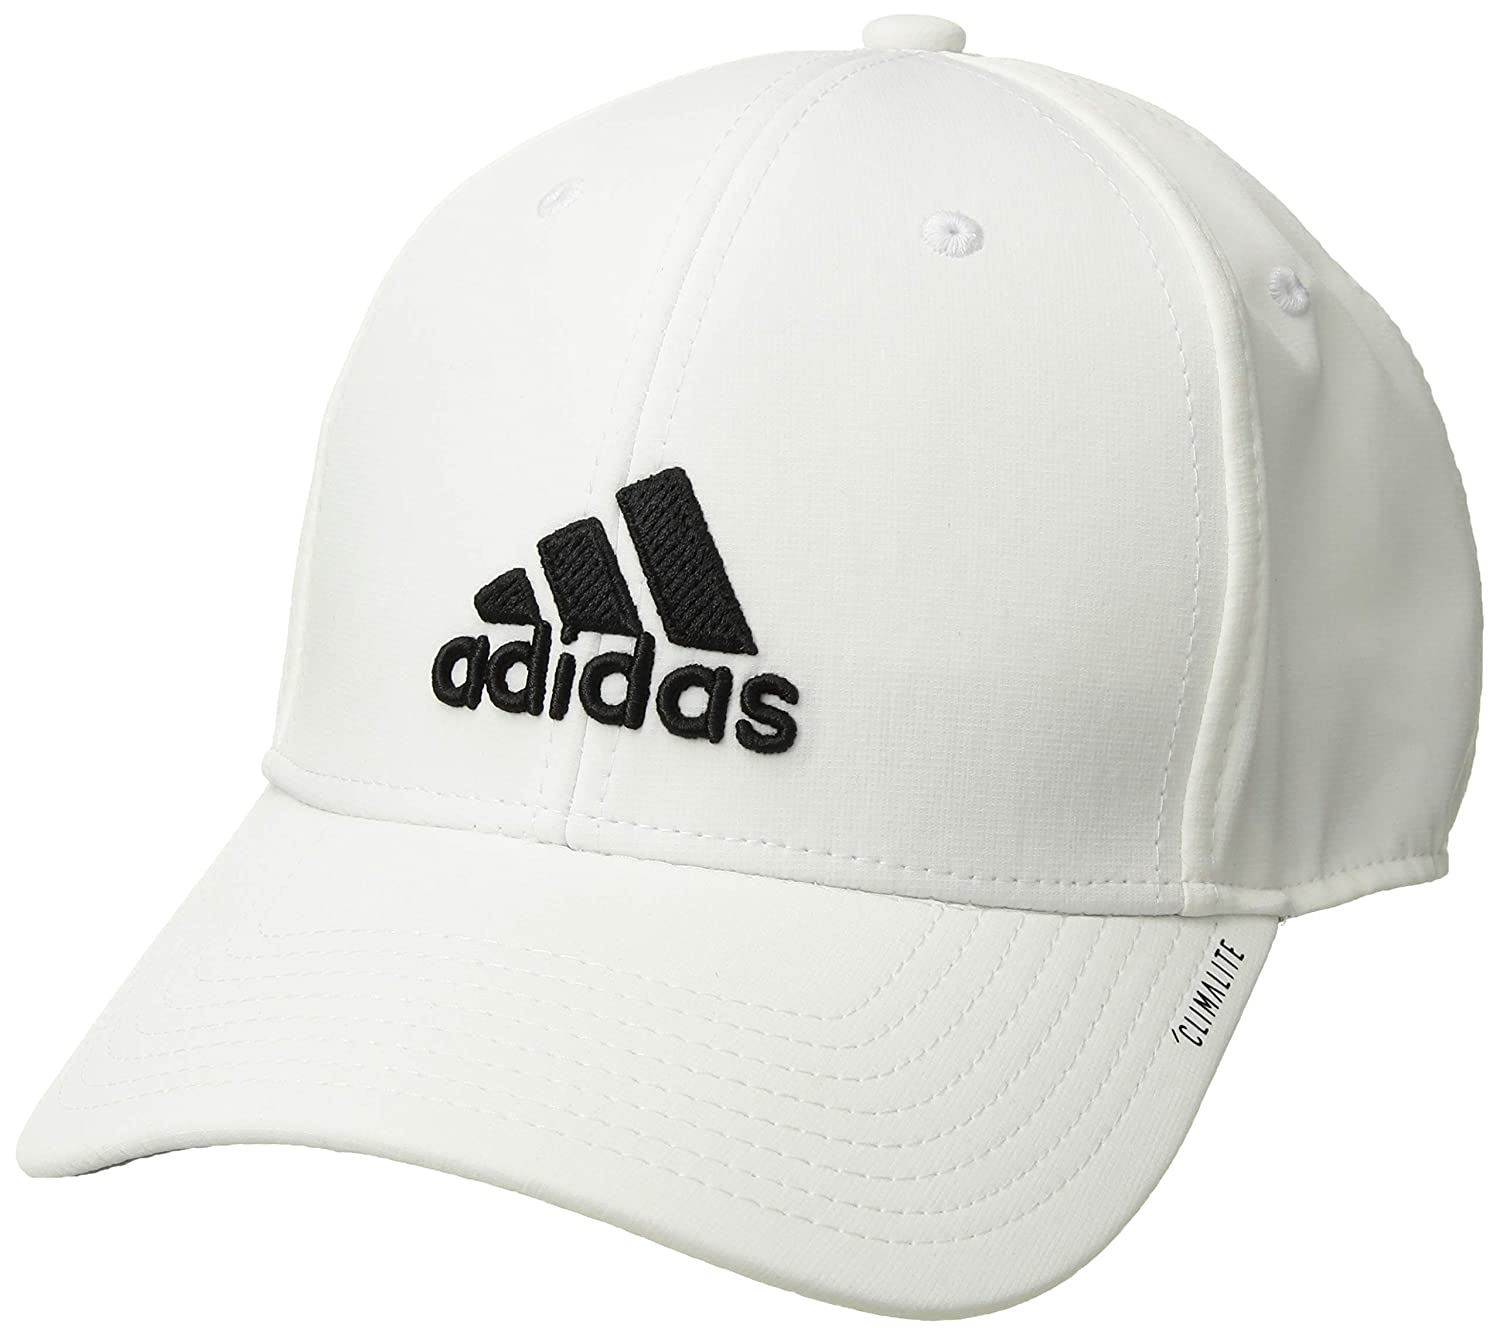 7ea9754c359 Amazon.com  adidas Men s Gameday Stretch Fit Structured Cap  Sports    Outdoors